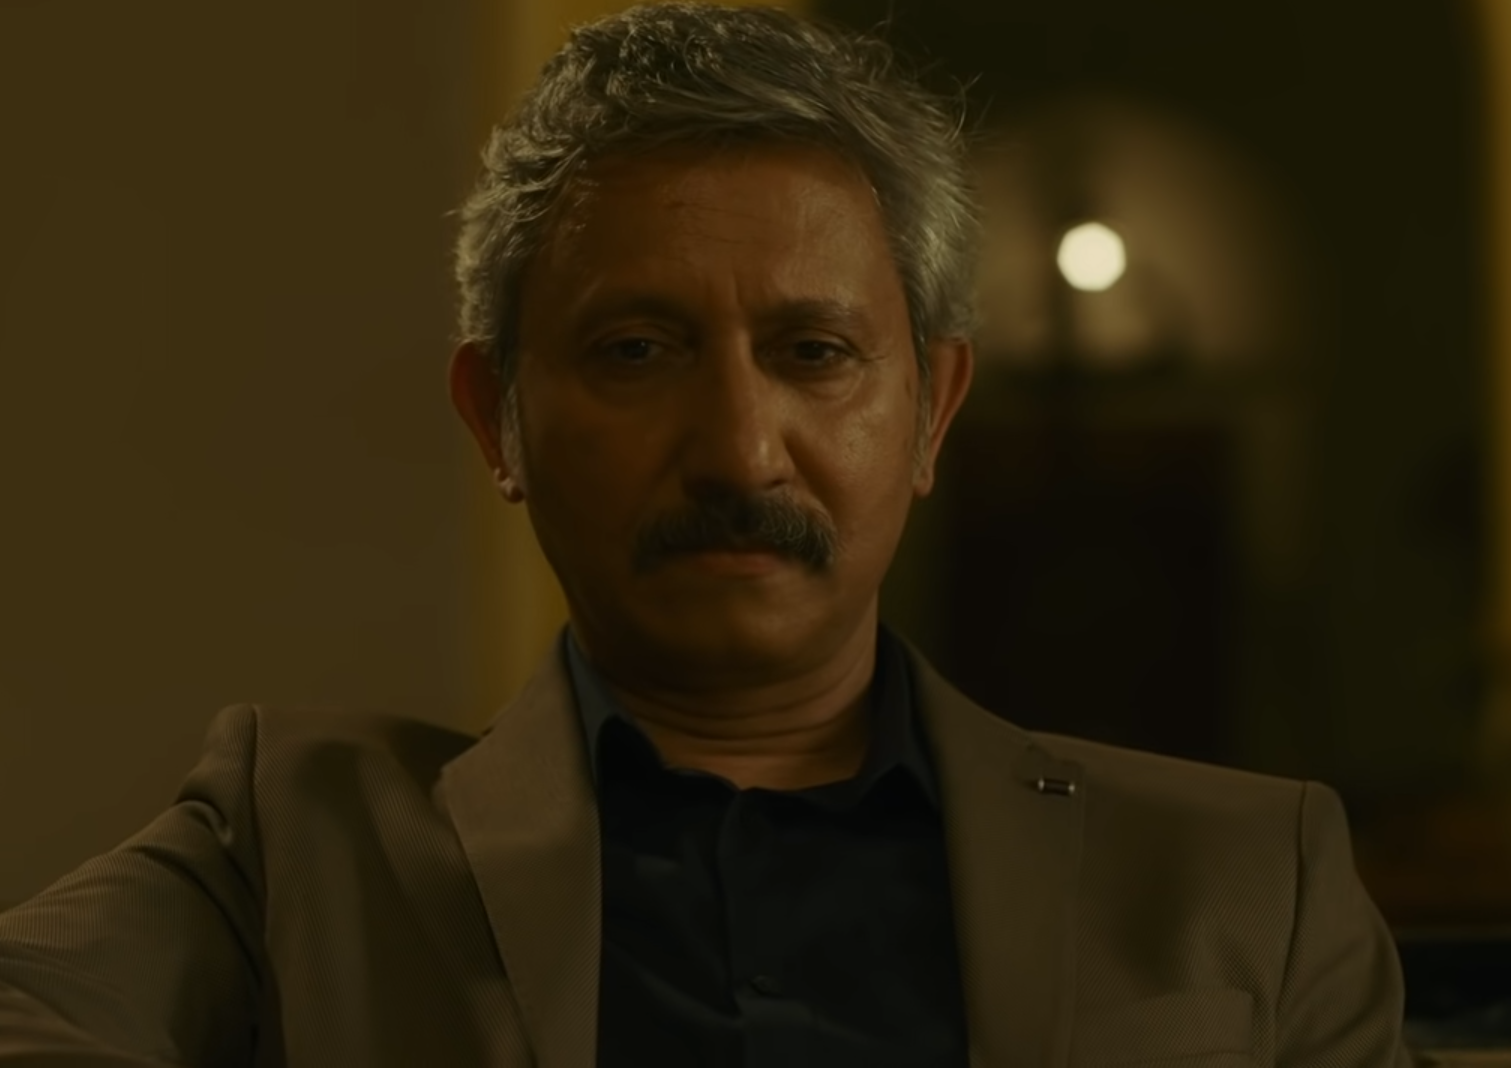 Paatal Lok actor Neeraj Kabi was more interested in Inspector Hathiram Chaudhary  character